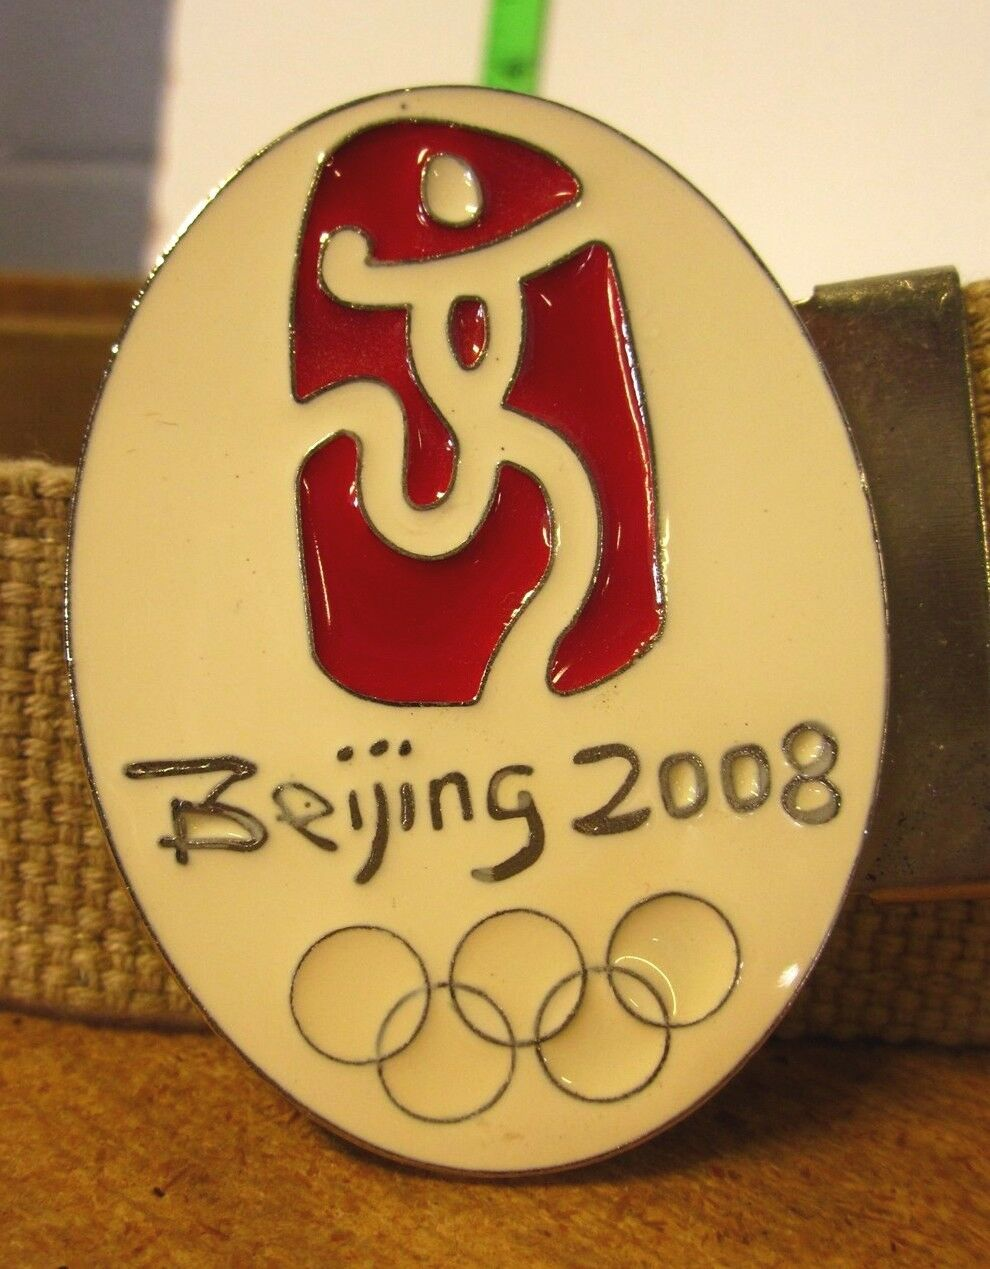 Beijing 2008 olympics import belt summer games xxix olympiad china picture 1 of 4 biocorpaavc Choice Image